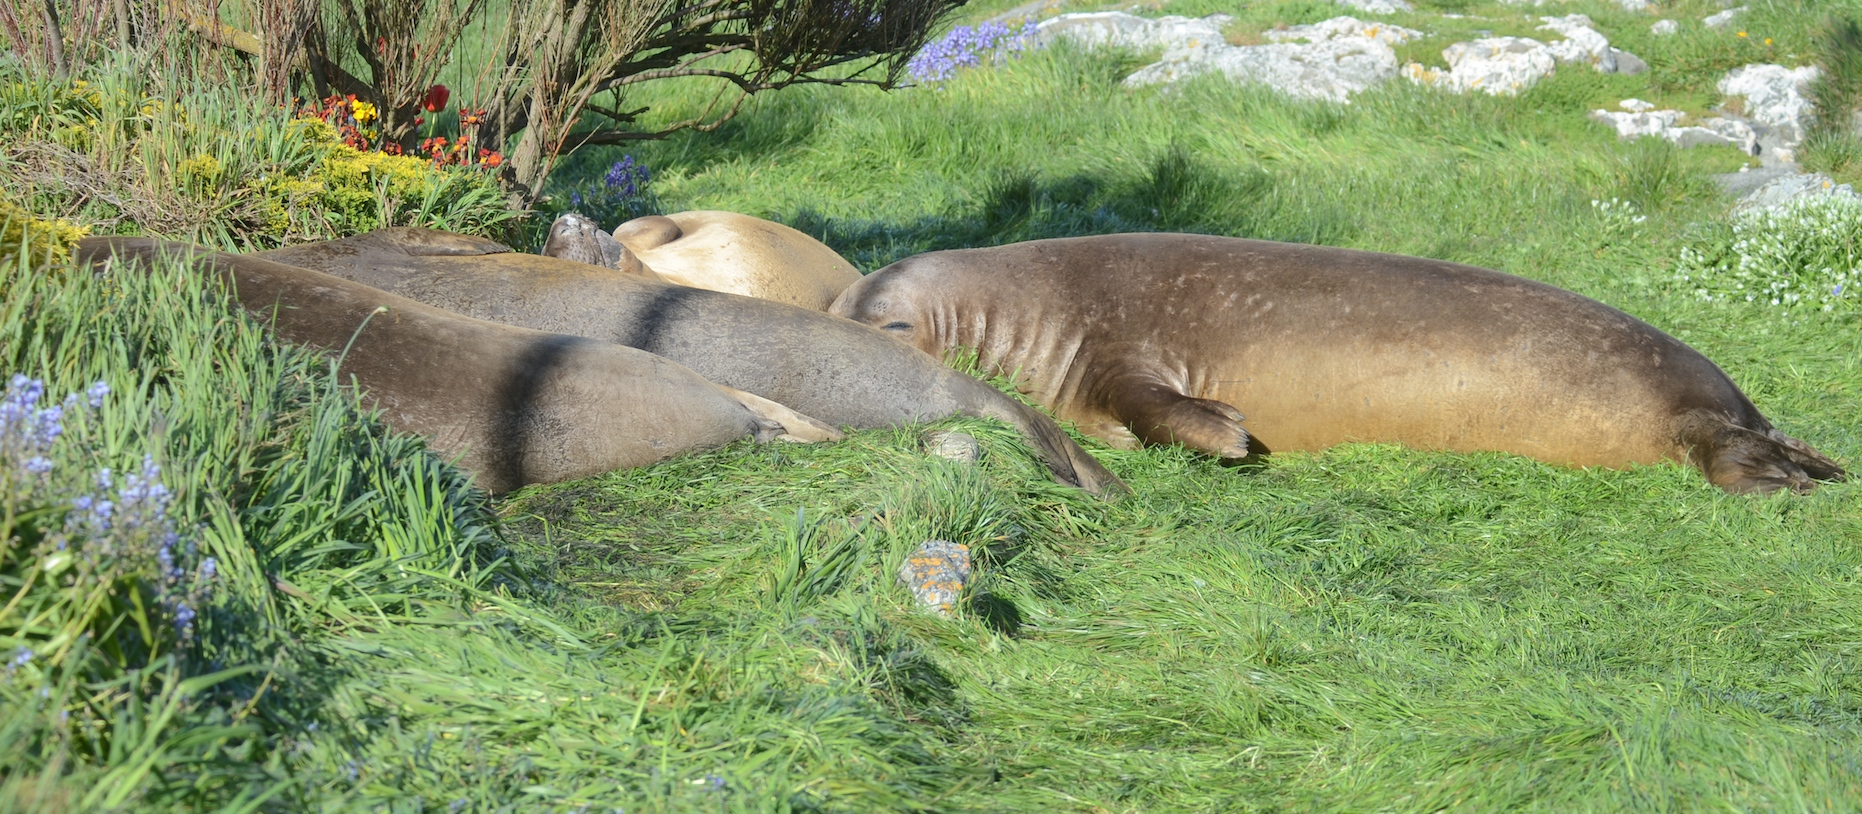 Northern Elephant Seals sleeping in the old garden.